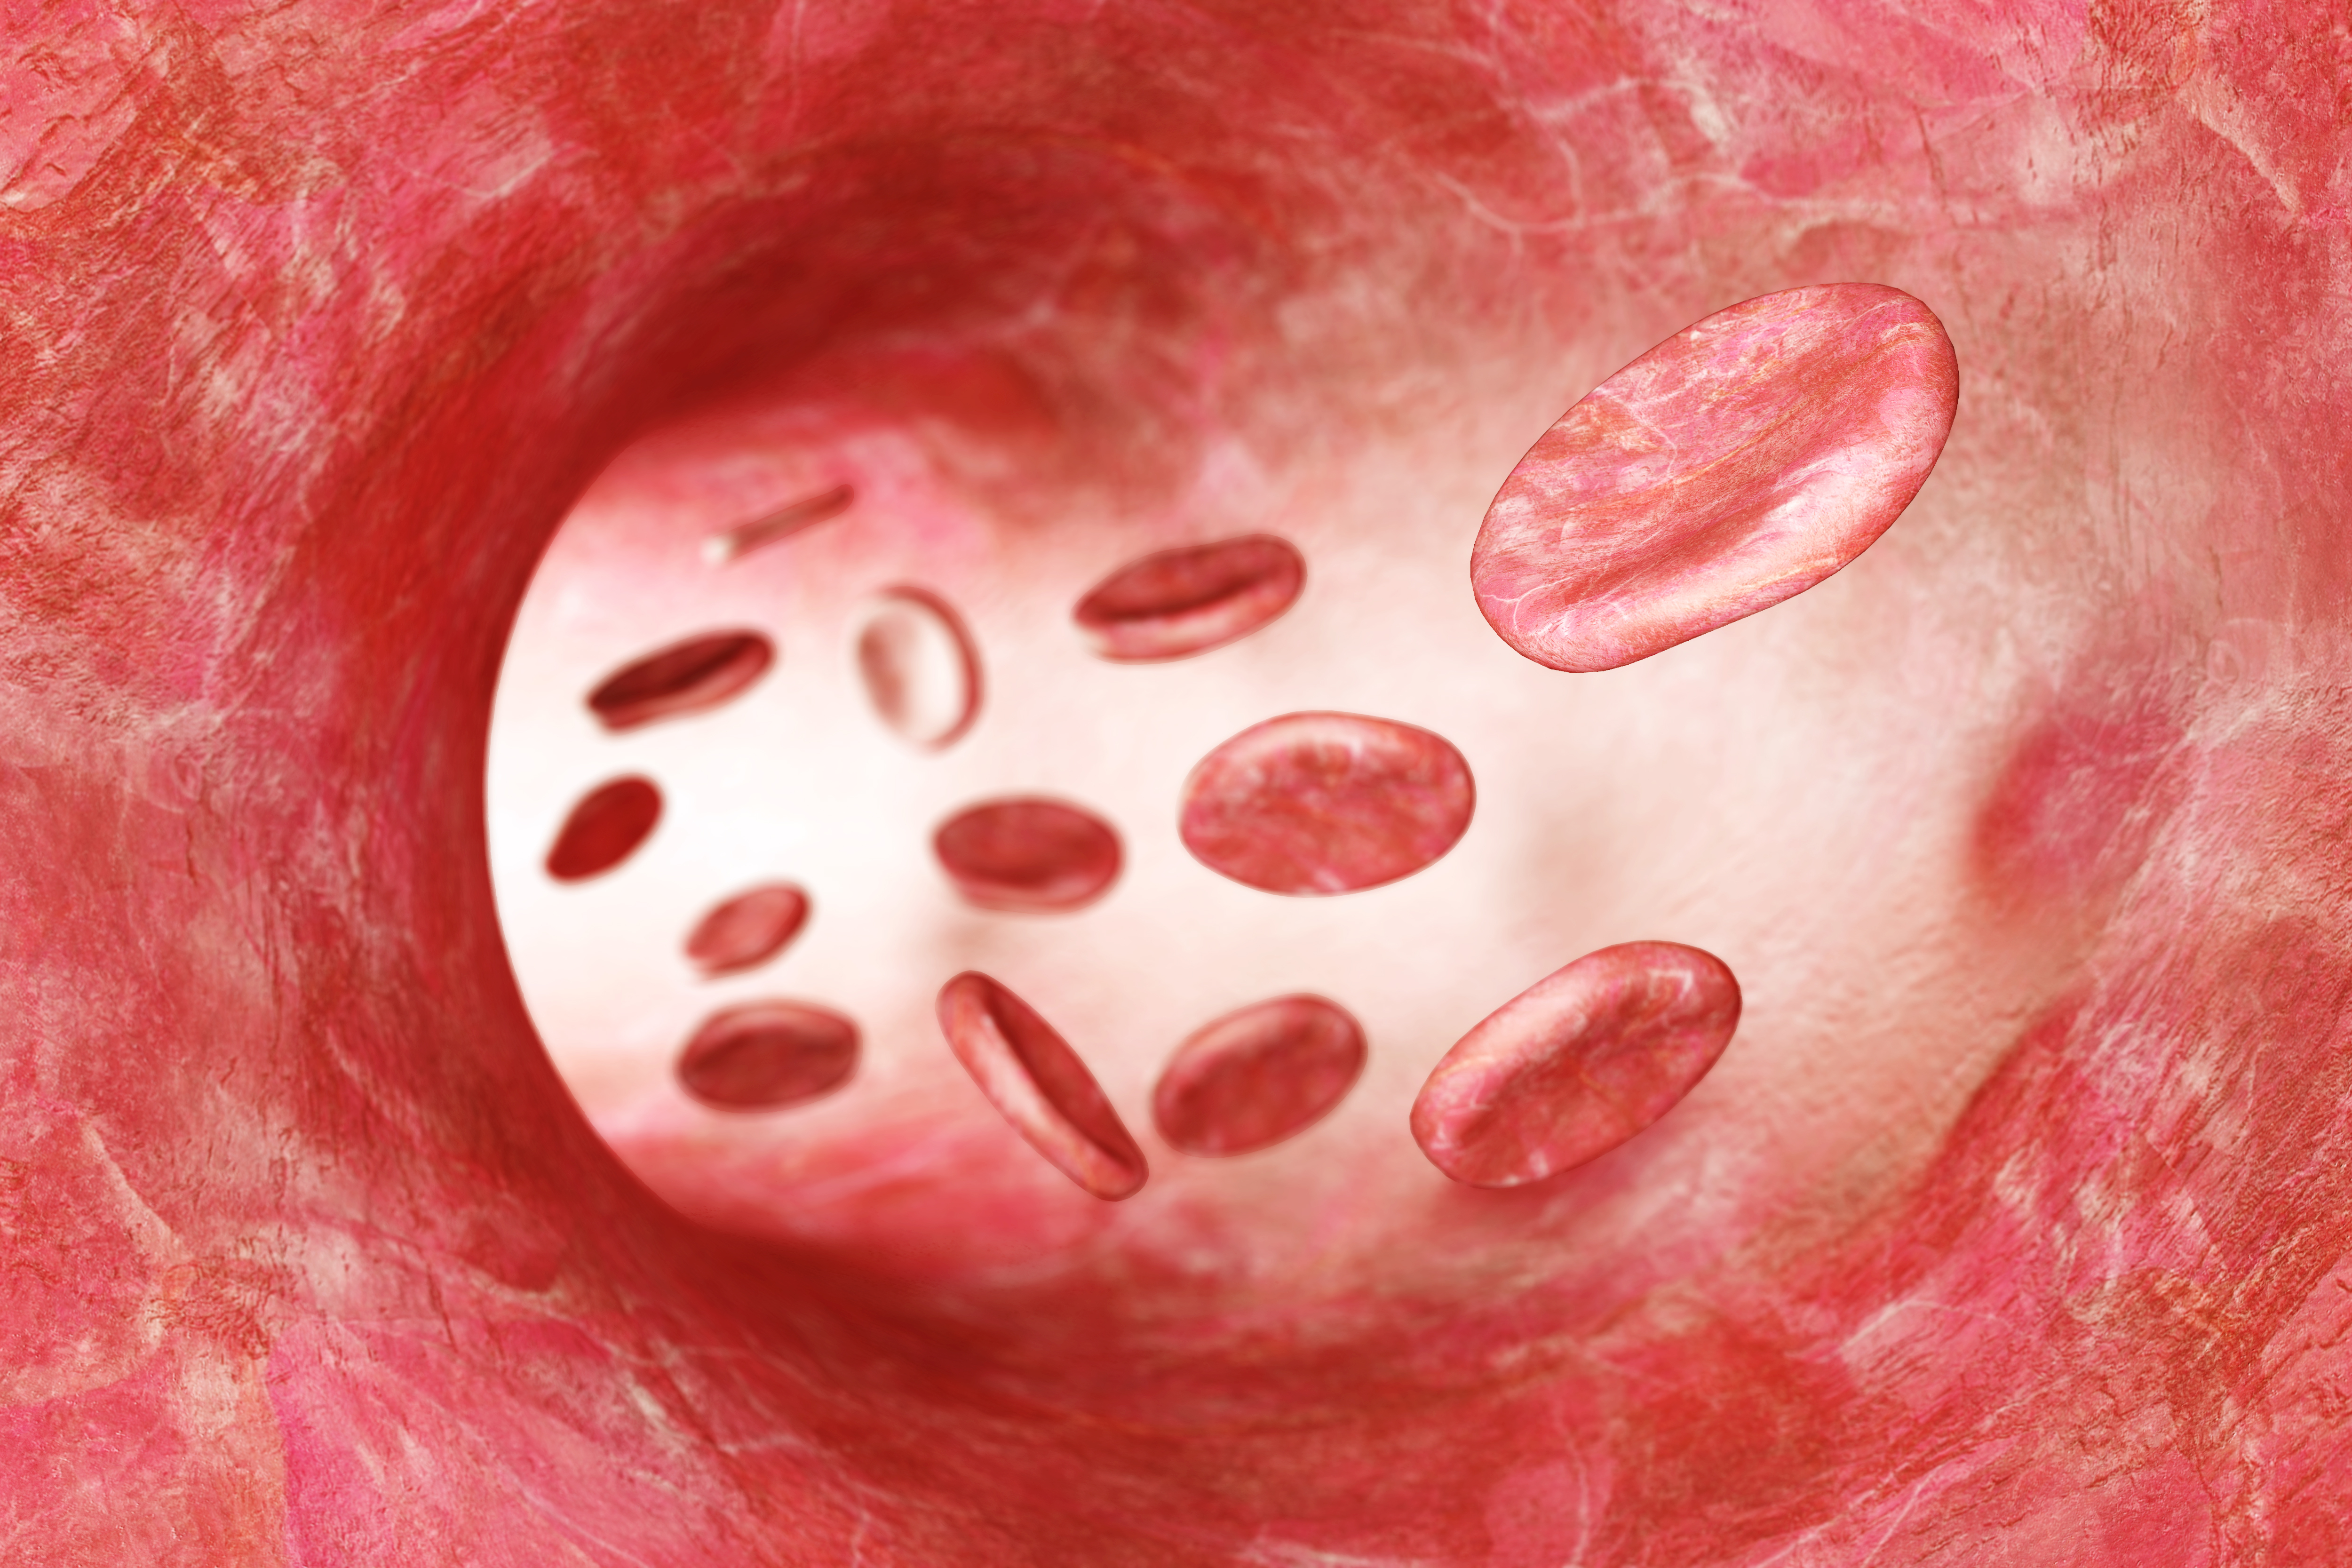 Antiphospholipid Antibody Levels High In SSc Patients